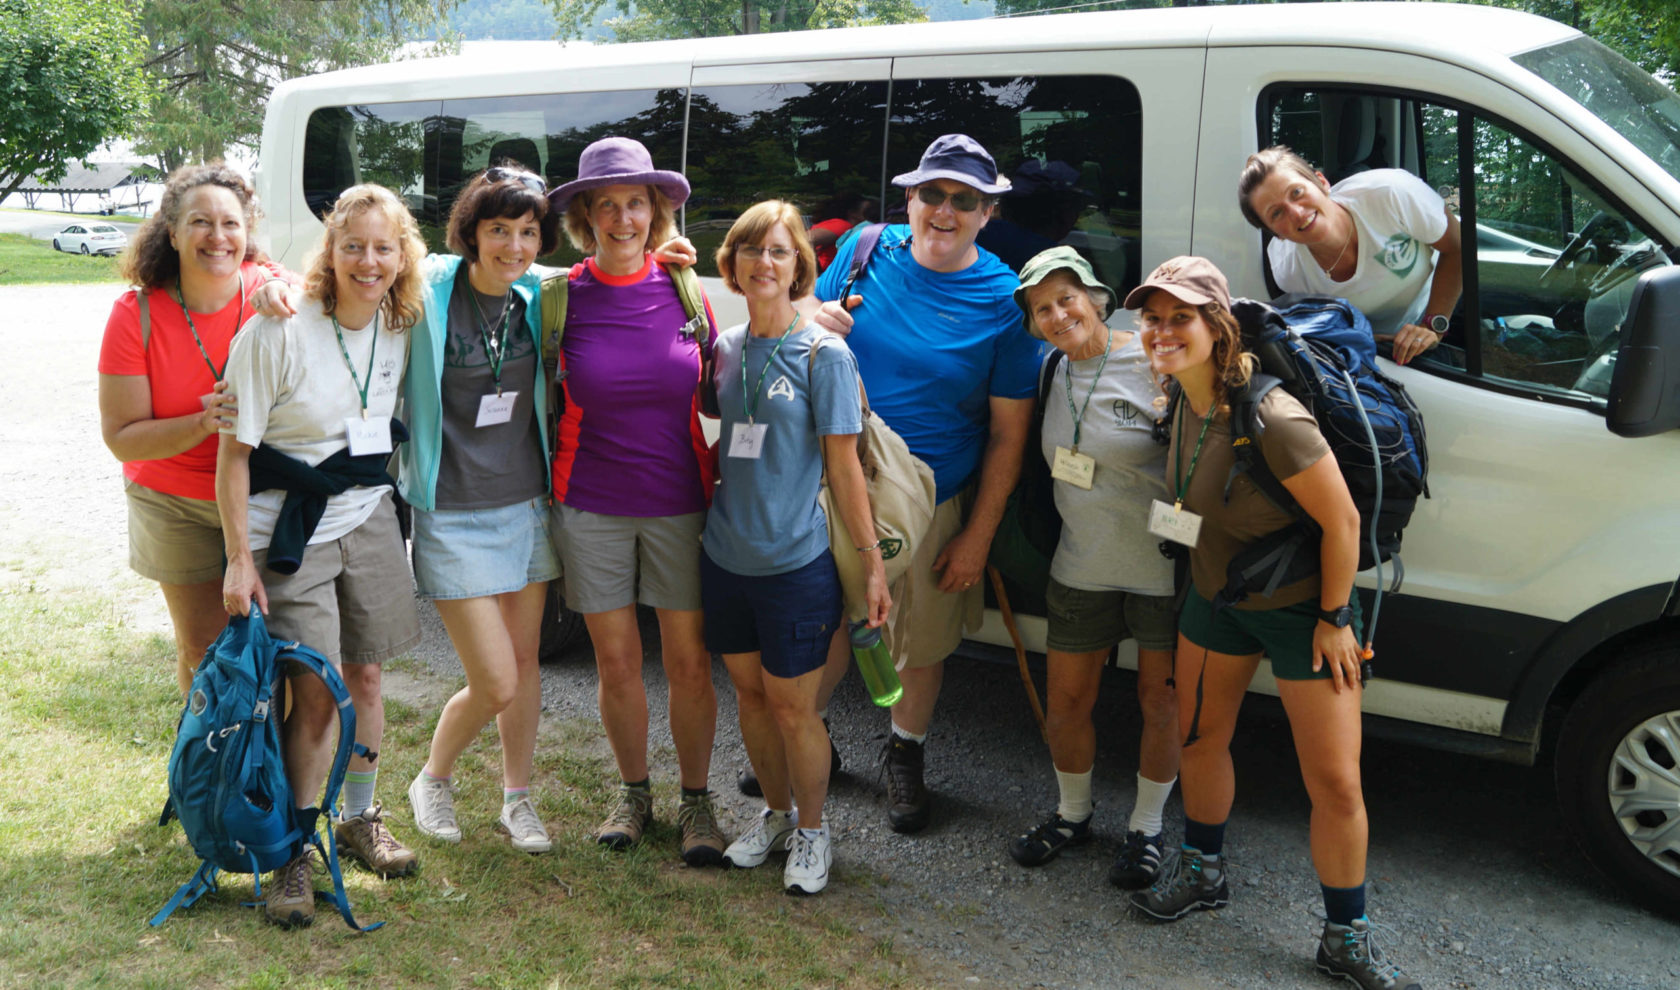 Campers standing outside a van.